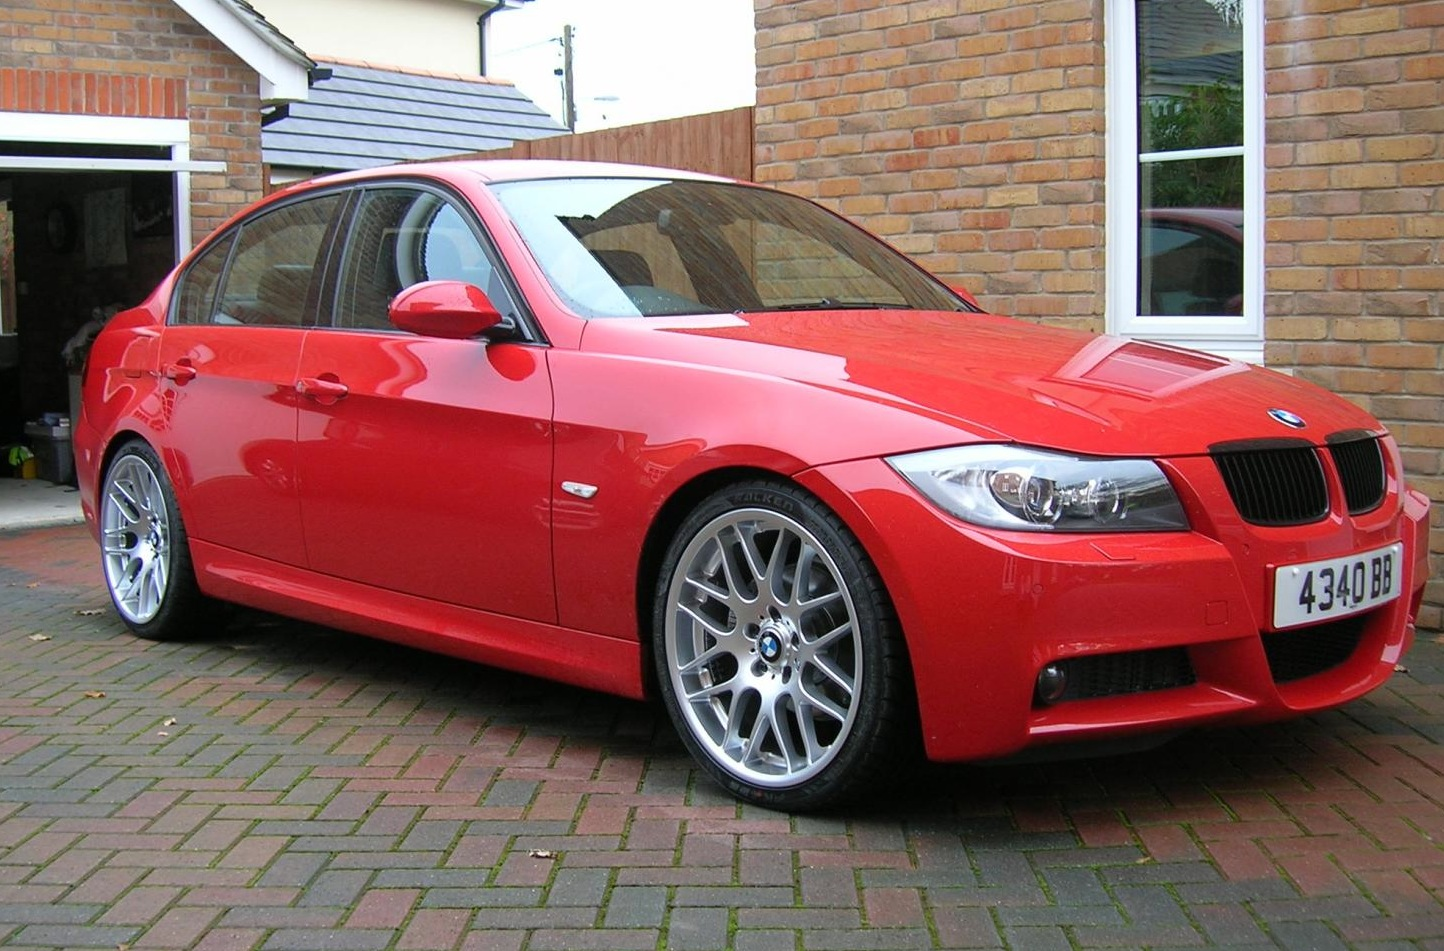 18 Quot Or 19 Quot Wheels On E90 Ride Quality In Uk